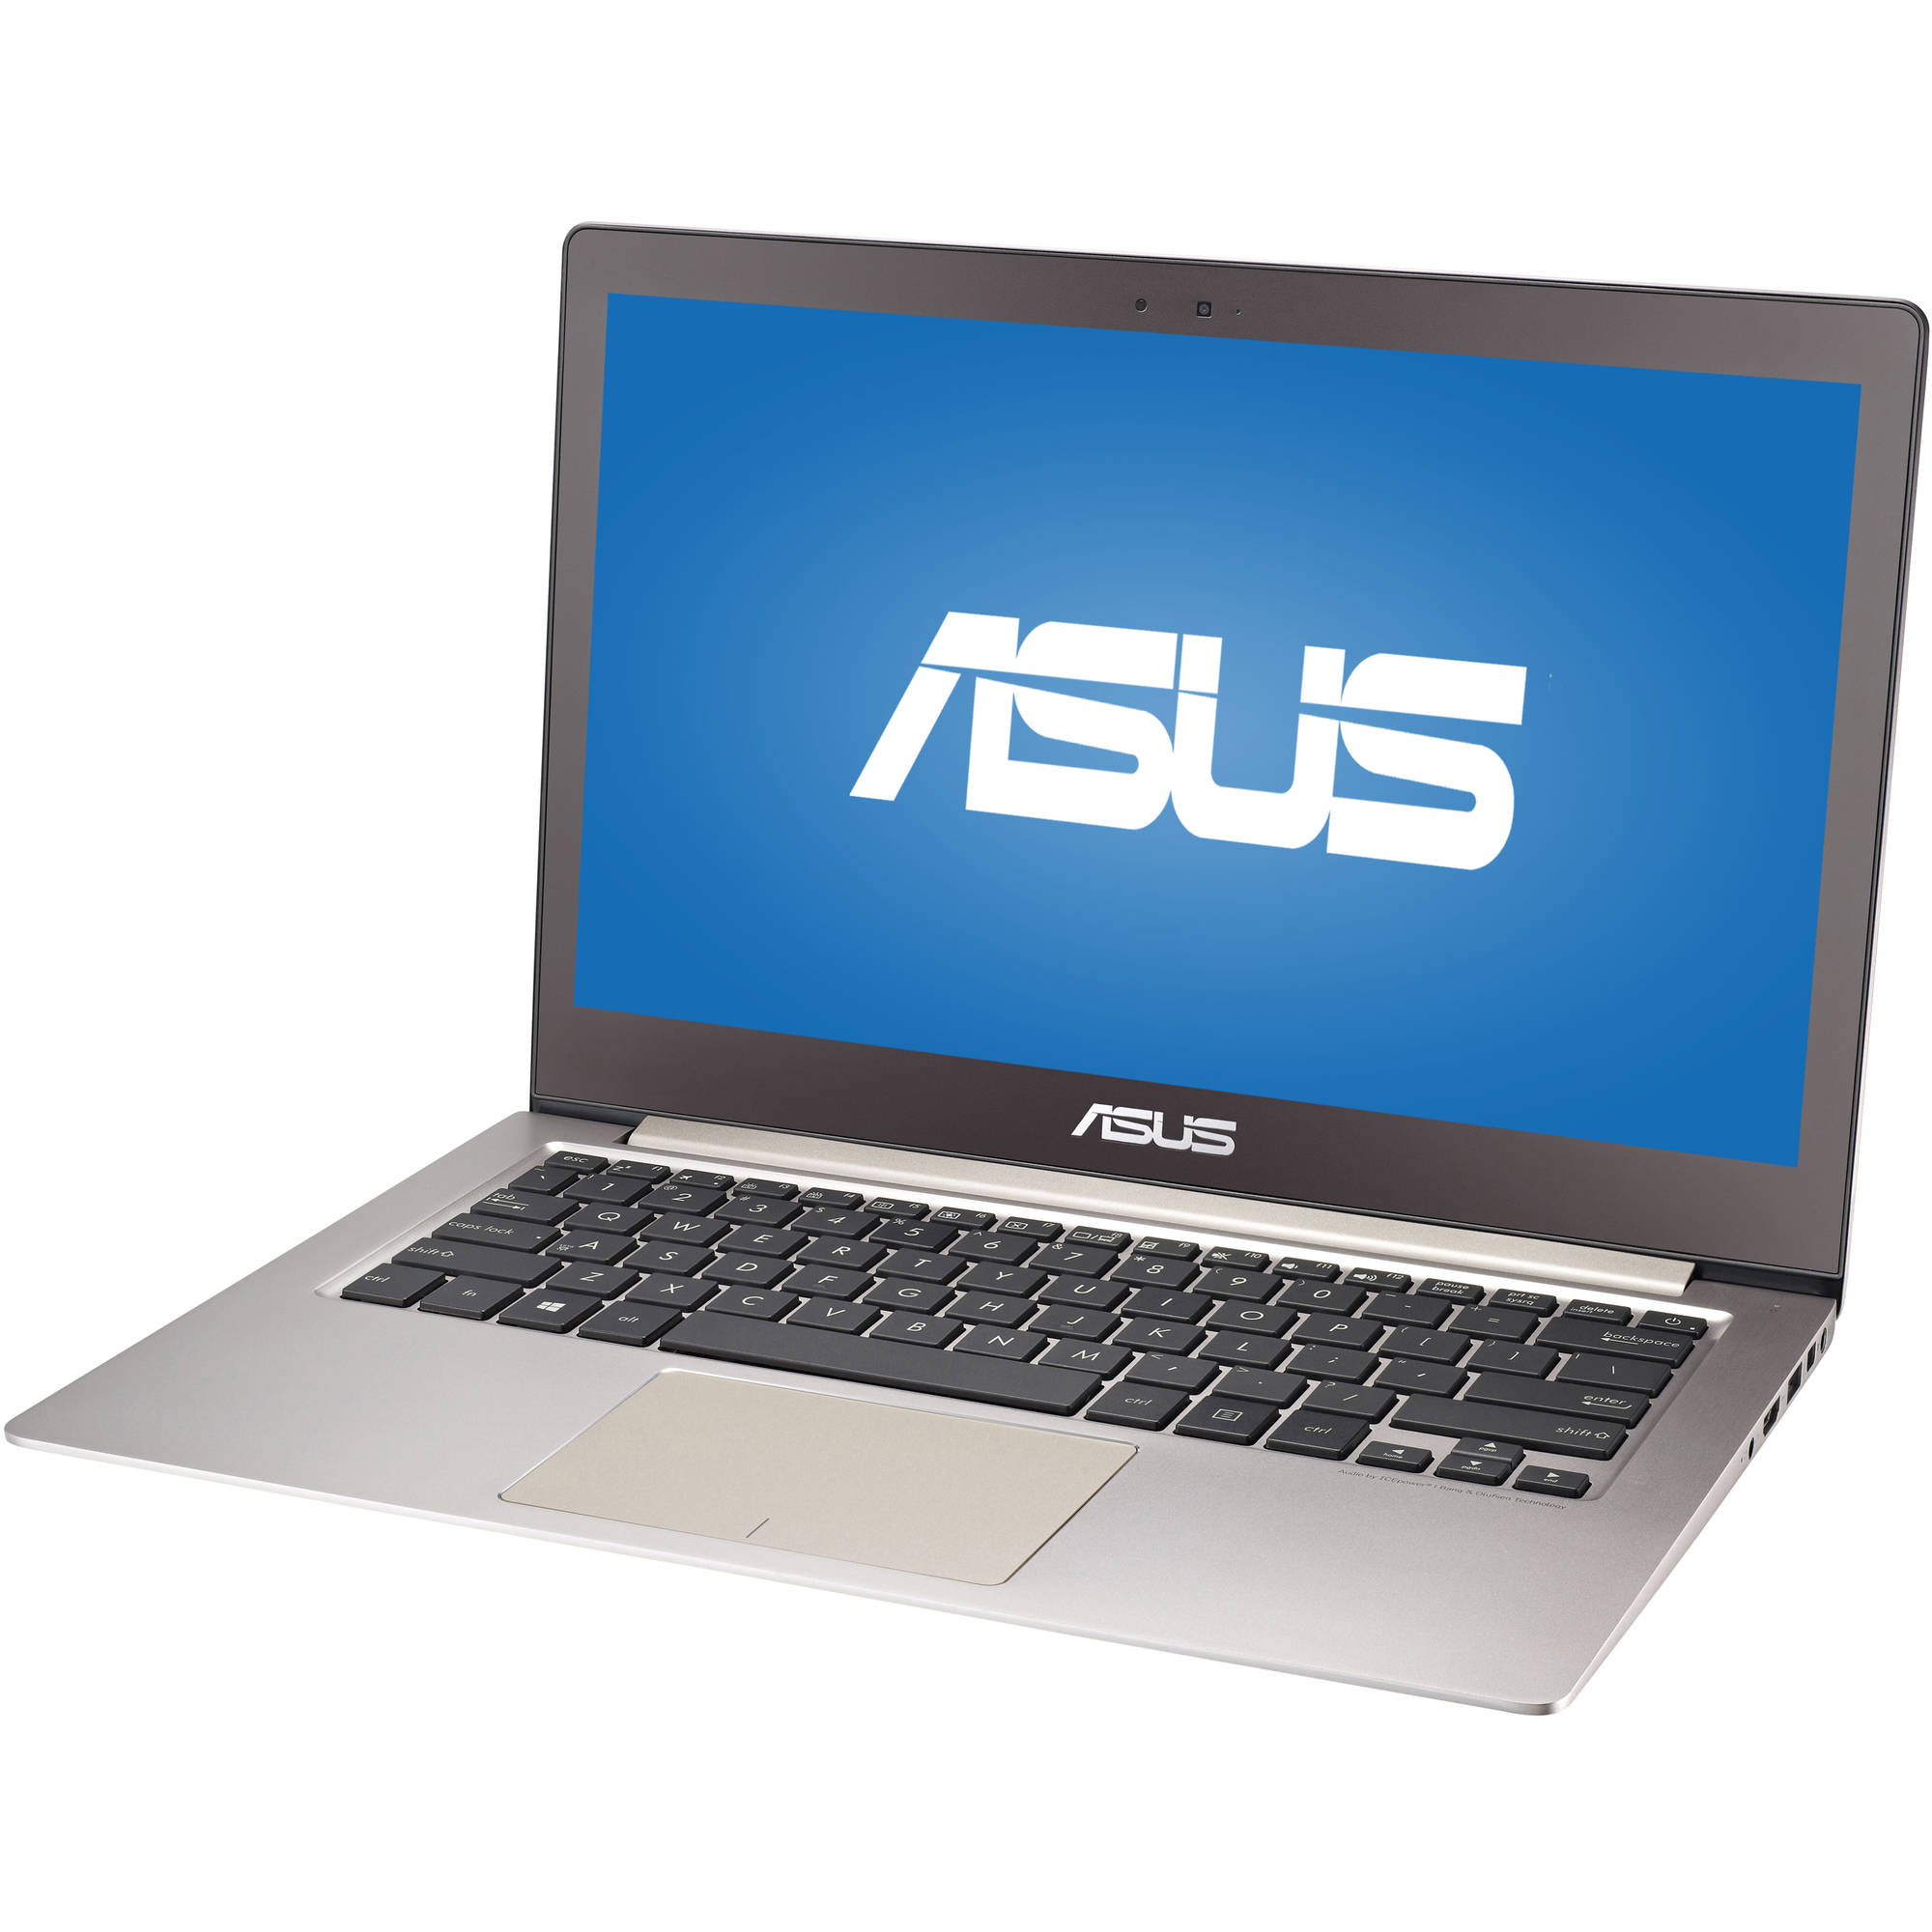 "ASUS Smokey Brown 13.3"" ZENBOOK UX303UA-YS51 Laptop PC with Intel Core i5-6200U Processor, 4GB Memory, 128GB Solid State Drive and Windows 10 Home"